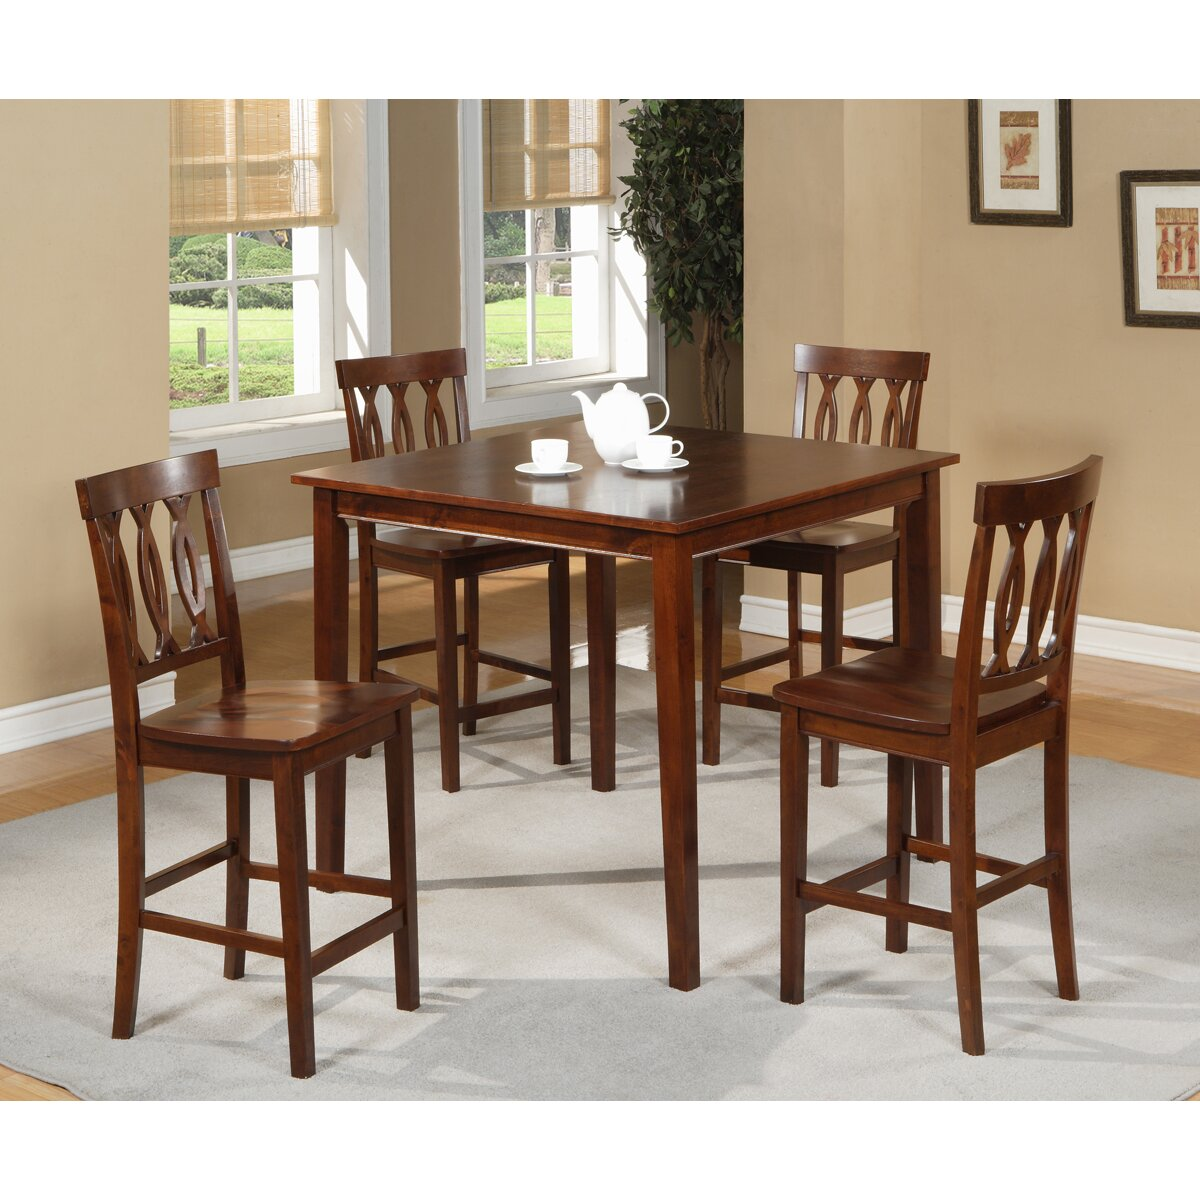 Williams Import Co 5 Piece Counter Height Dining Set